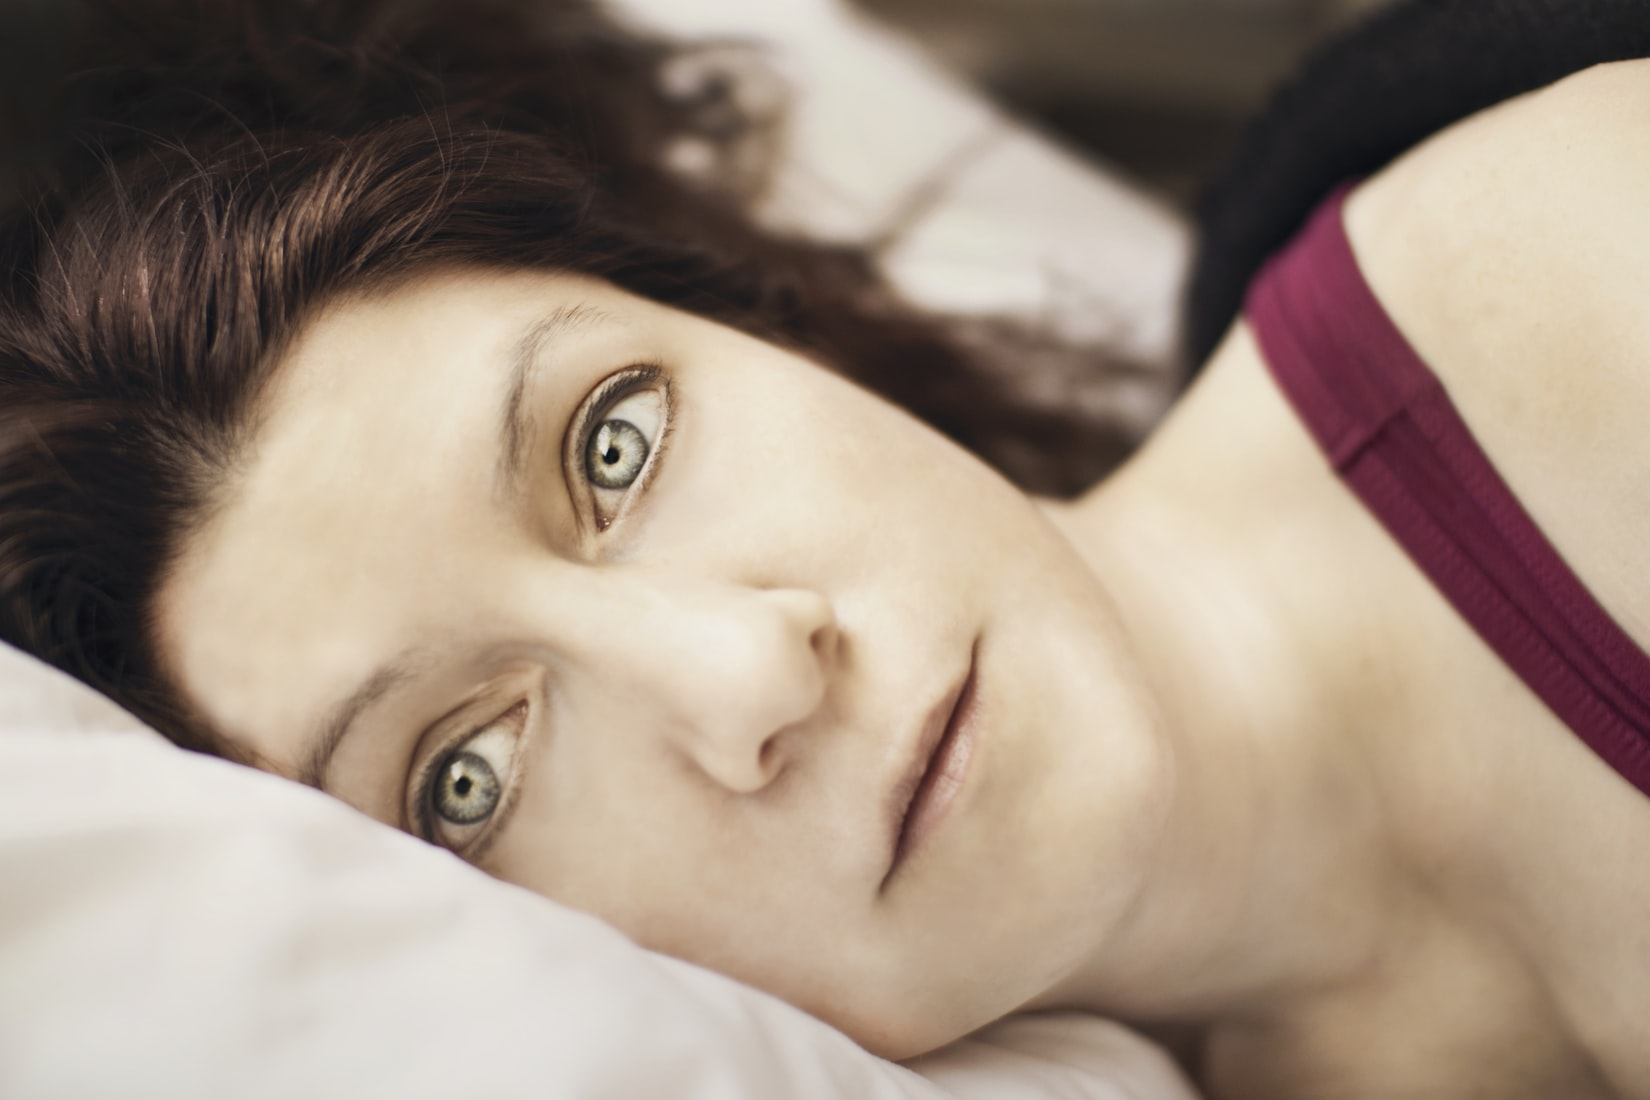 Brunette woman with hazel eyes awake in bed at night due to too many thoughts